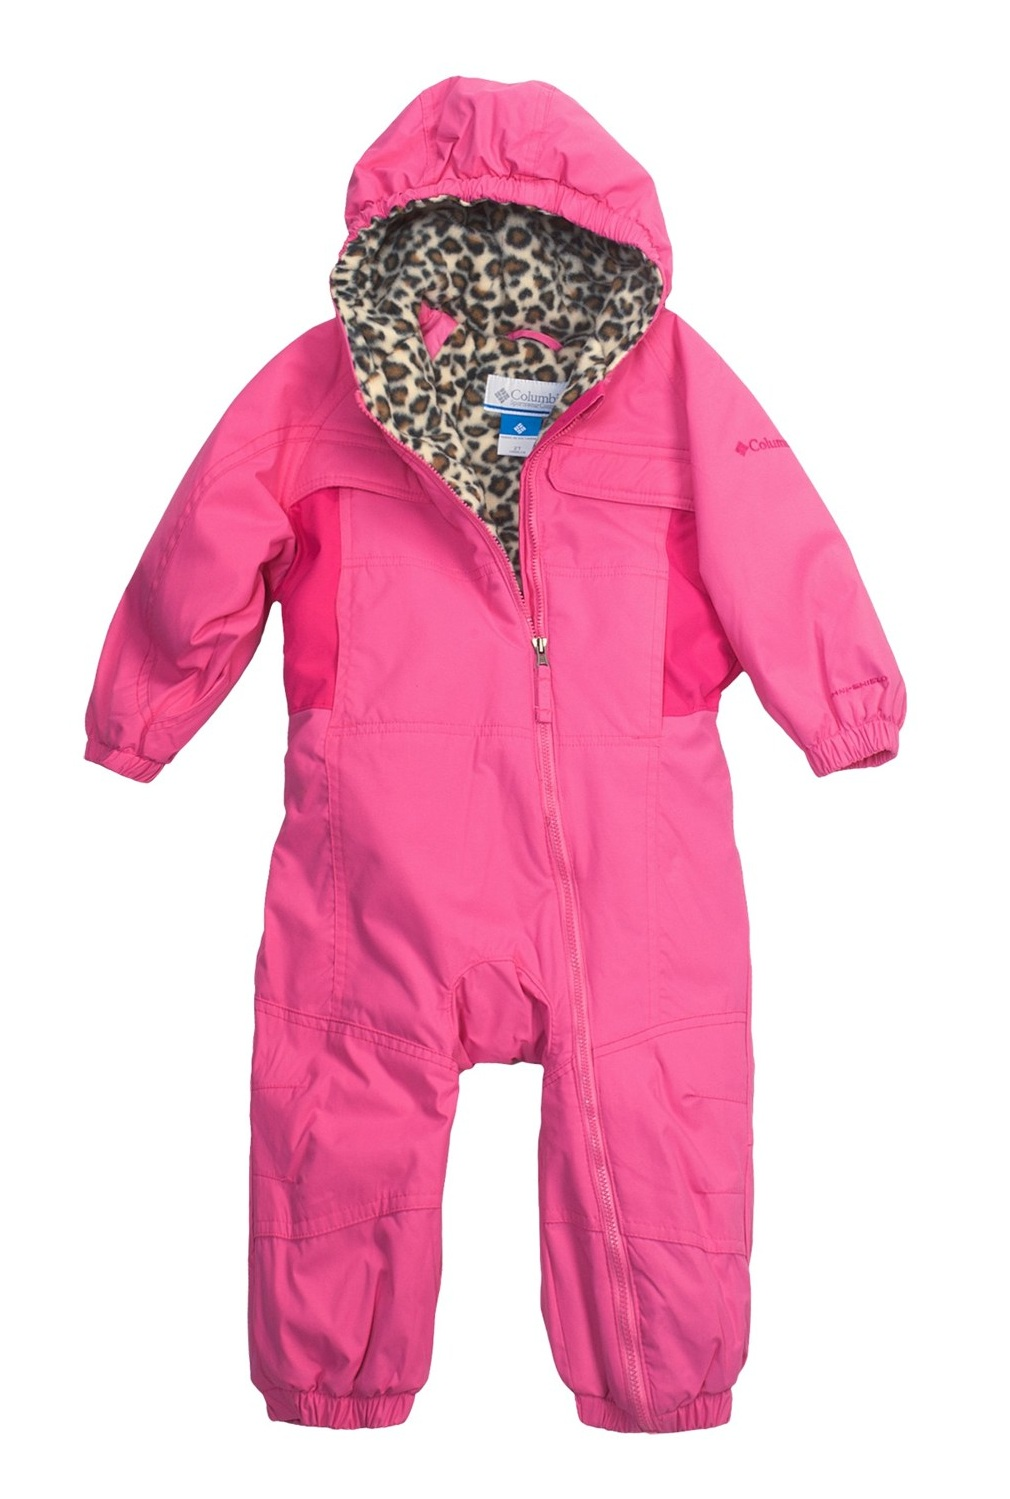 columbia-sportswear-rope-tow-rider-snow-suit-insulated-for-infants_02